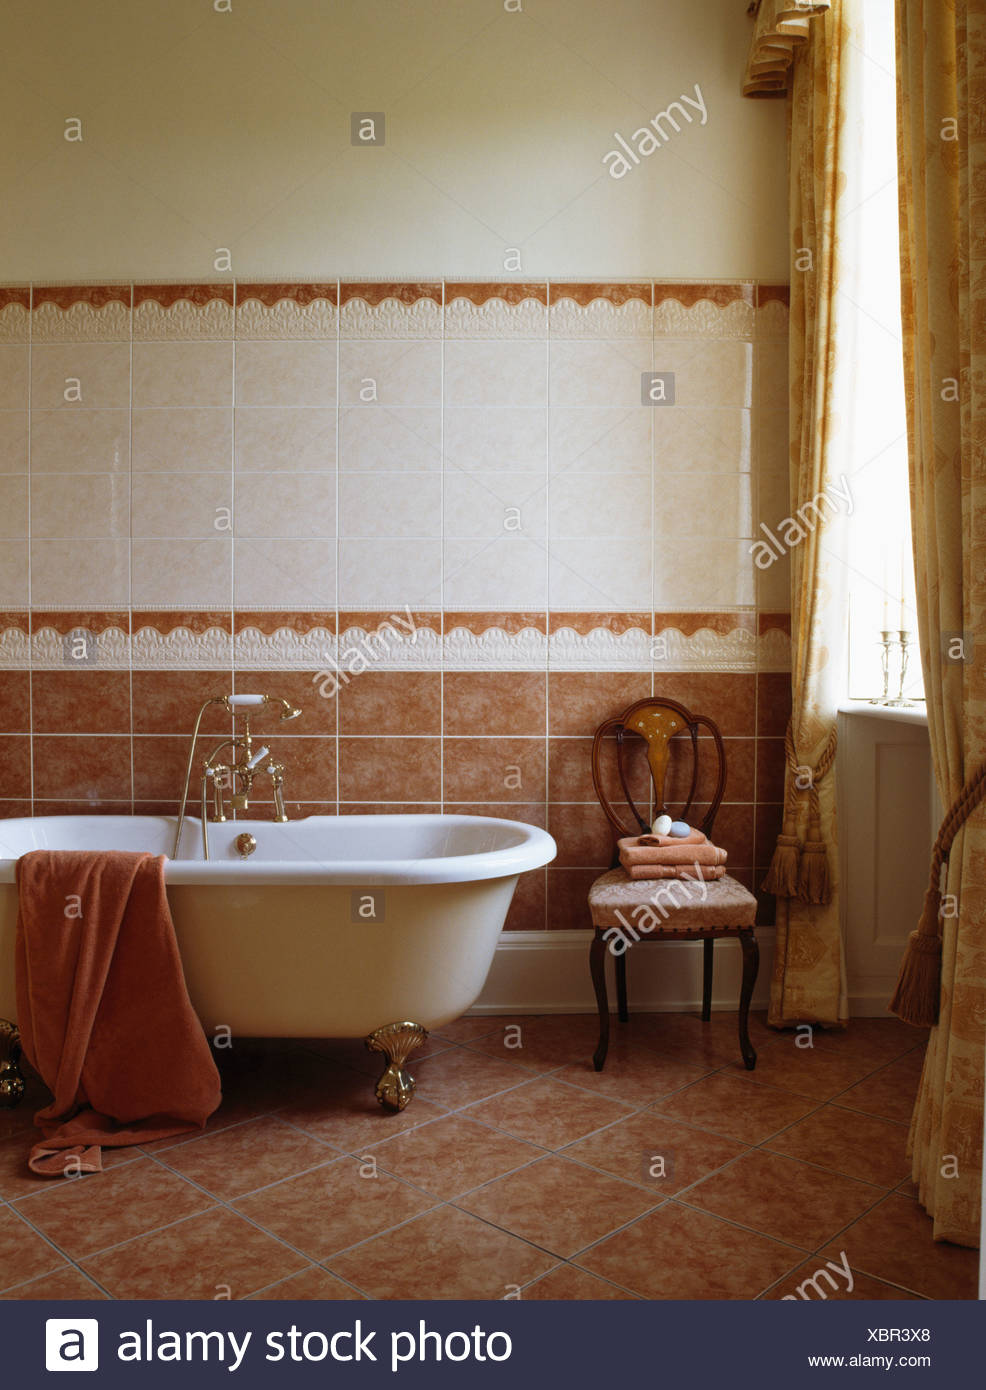 Roll-top bath in terracotta and white tiled bathroom with